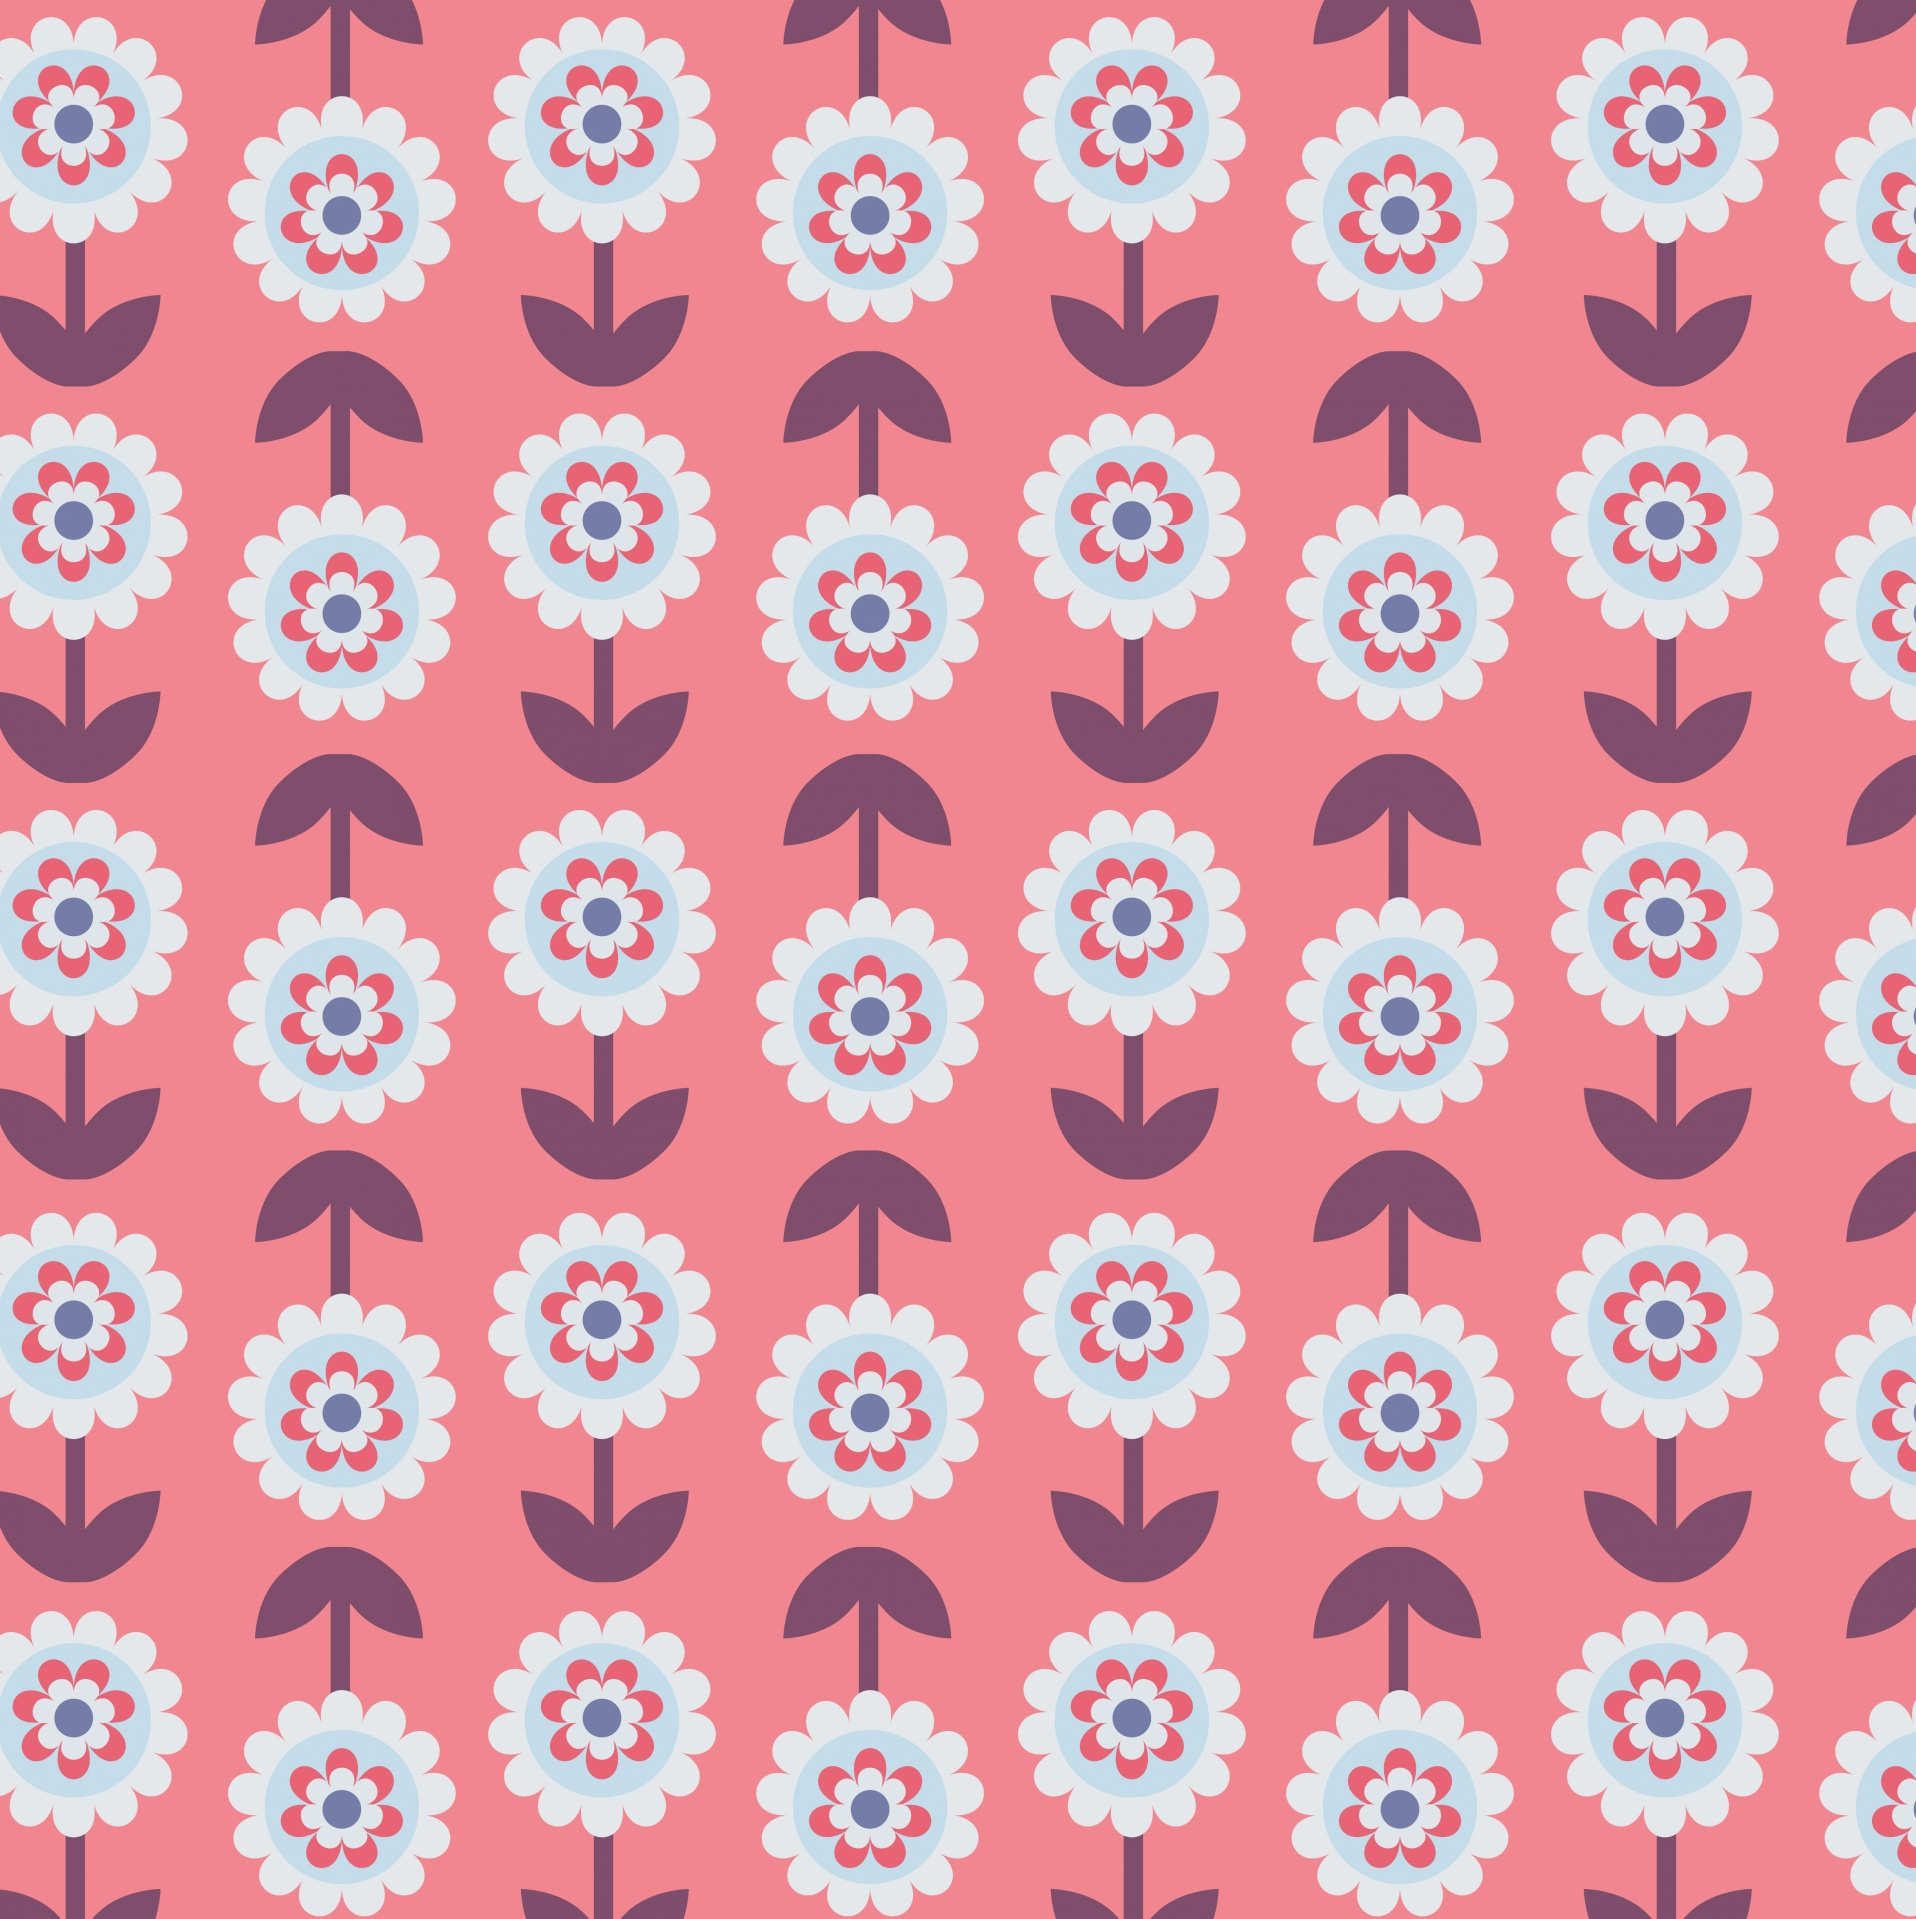 Floral Flowers Retro Background Wallpaper Free Image From